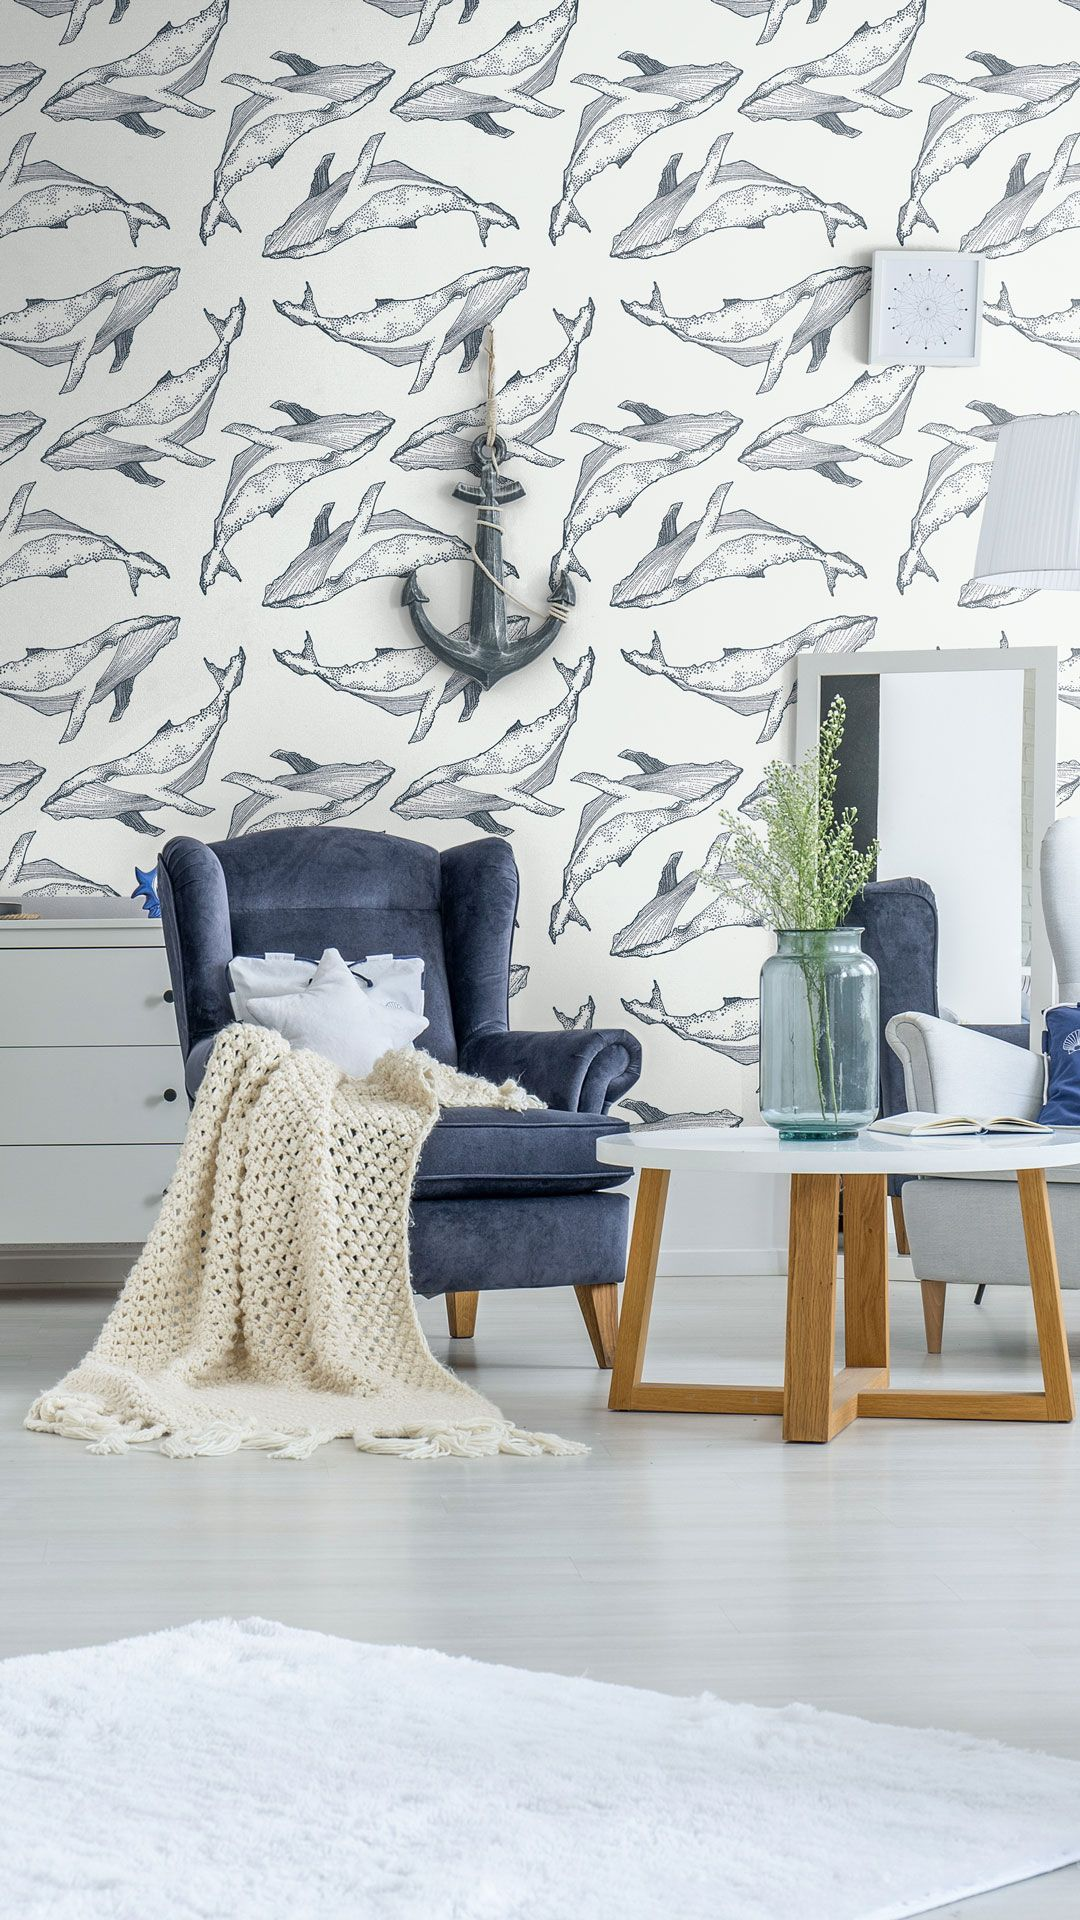 Navy Fish Nautical Peel And Stick Removable Wallpaper 8098 Removable Wallpaper Large Scale Wallpaper Traditional Wallpaper